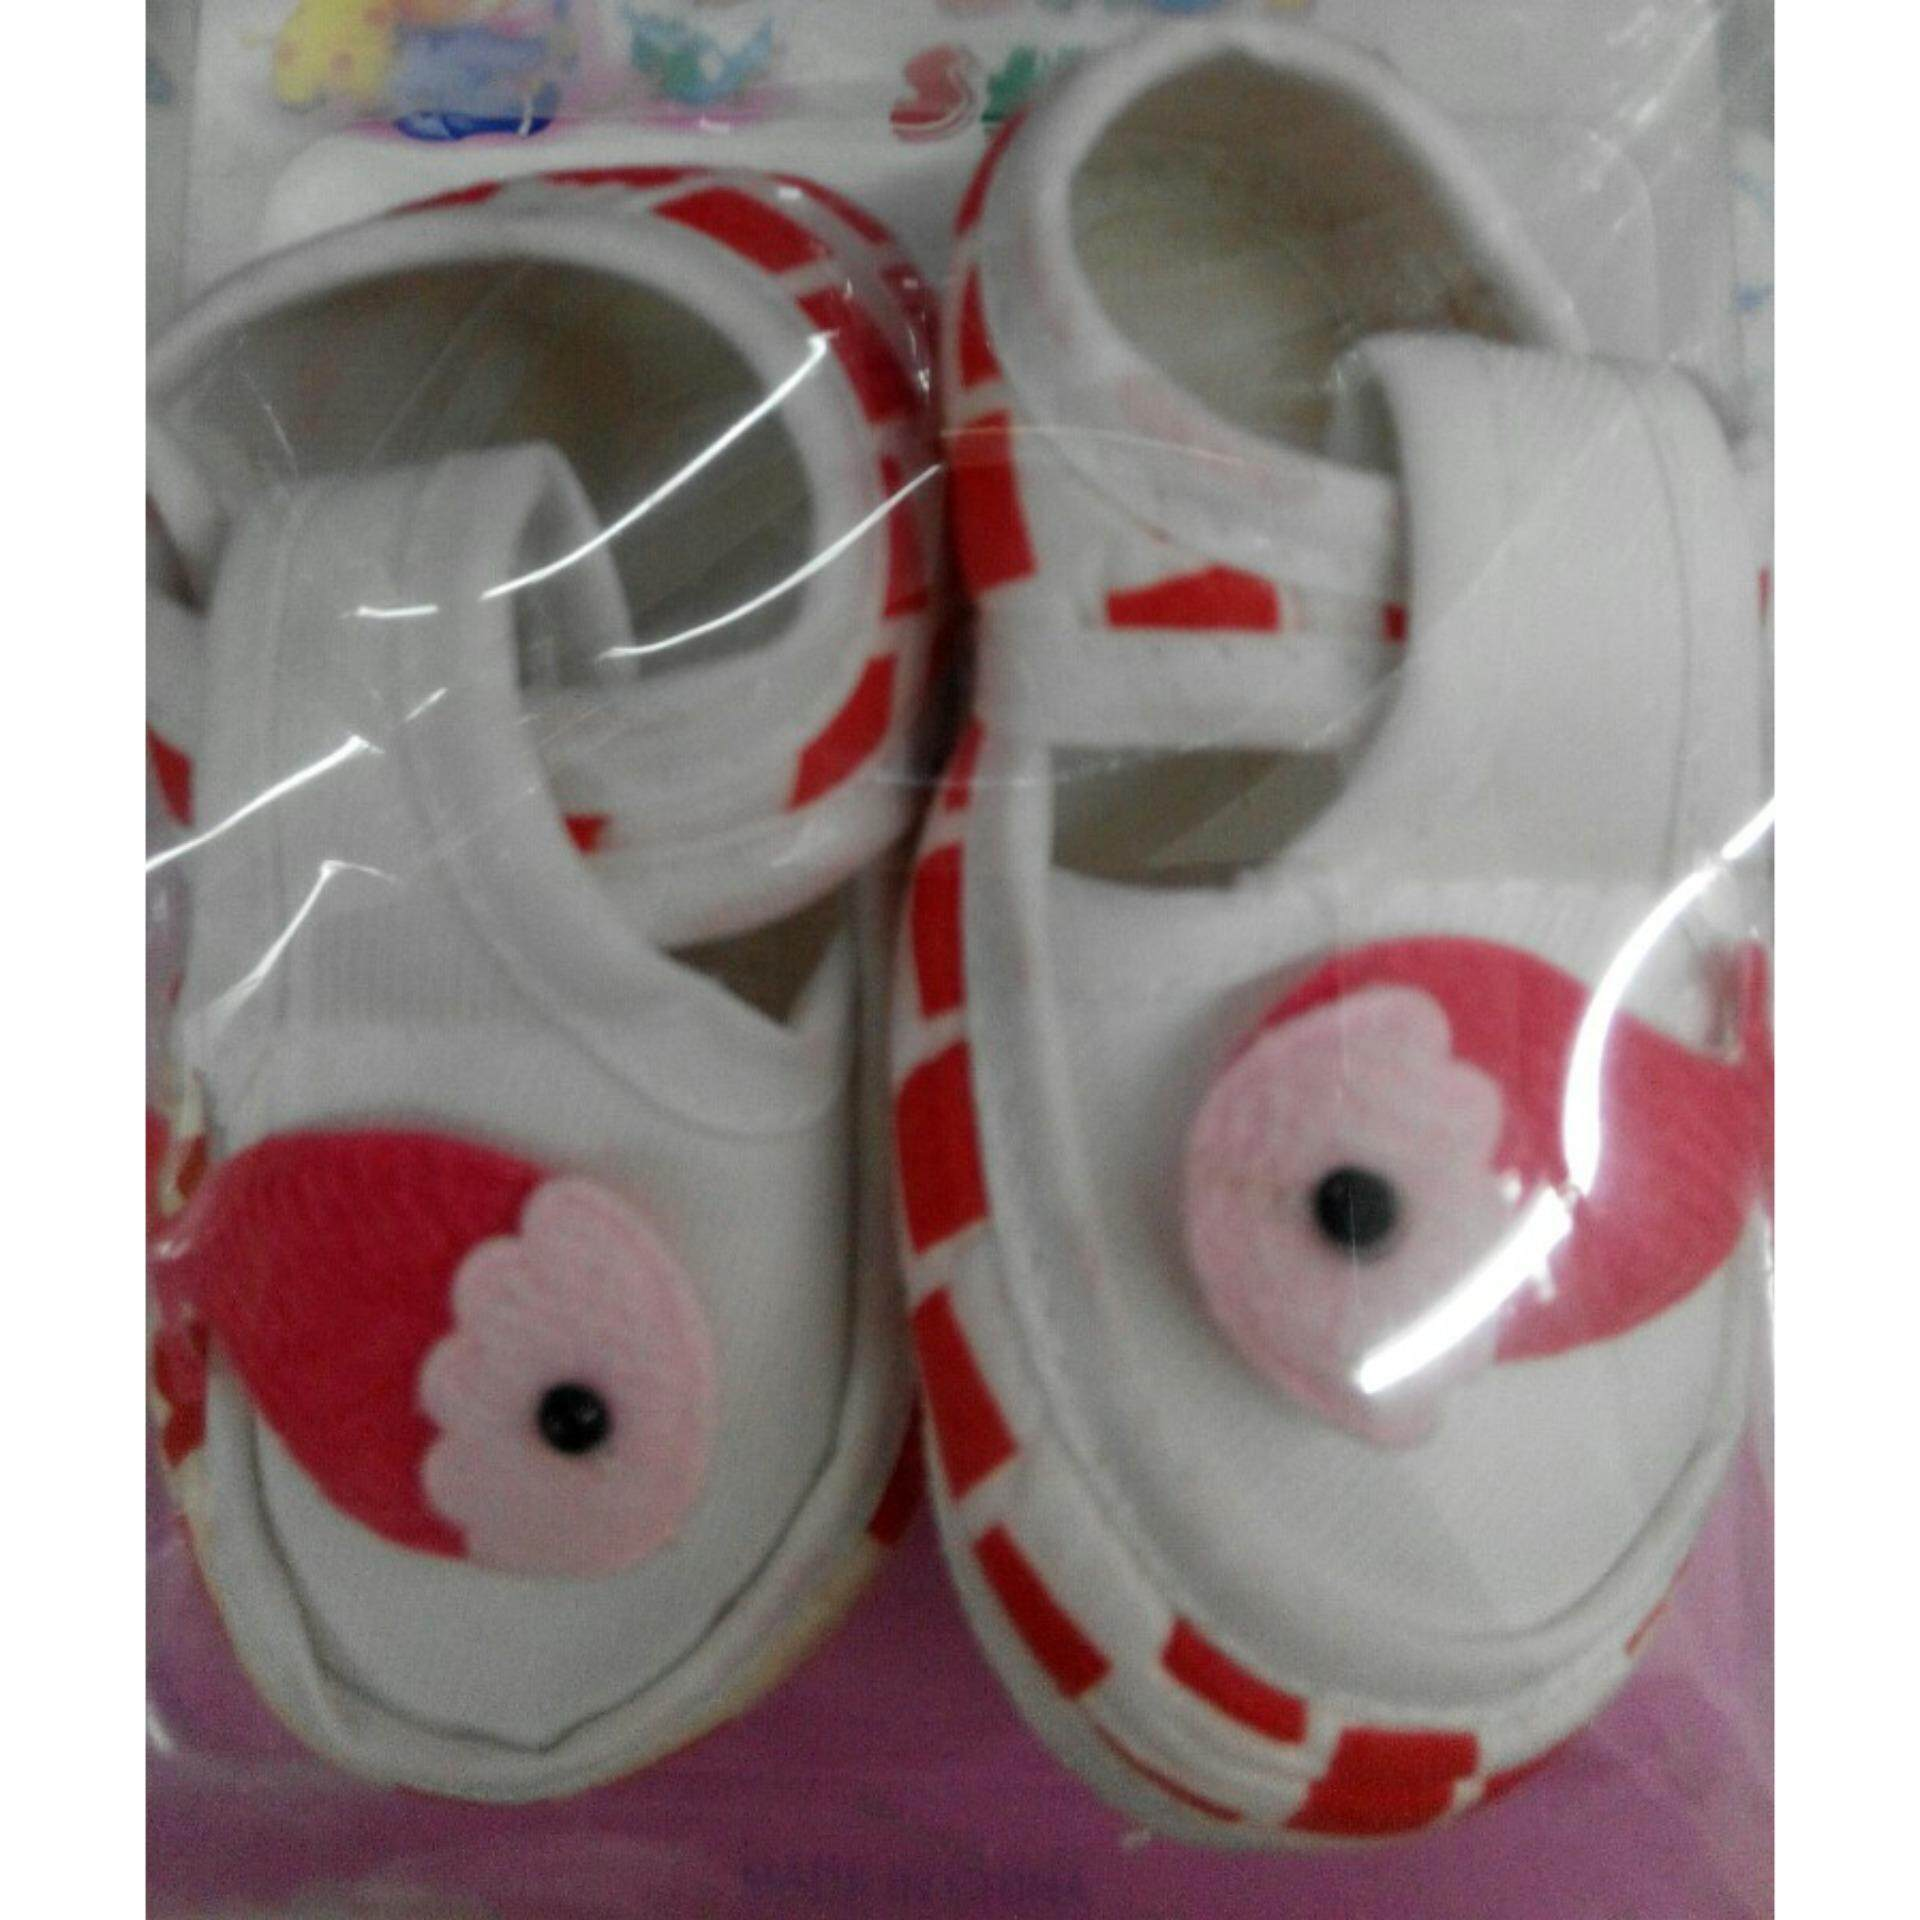 Iwalkerone7 New Arrival Musi White Nokha Sneakers Women Putih 39 Baby Soft Sole Crib Shoes